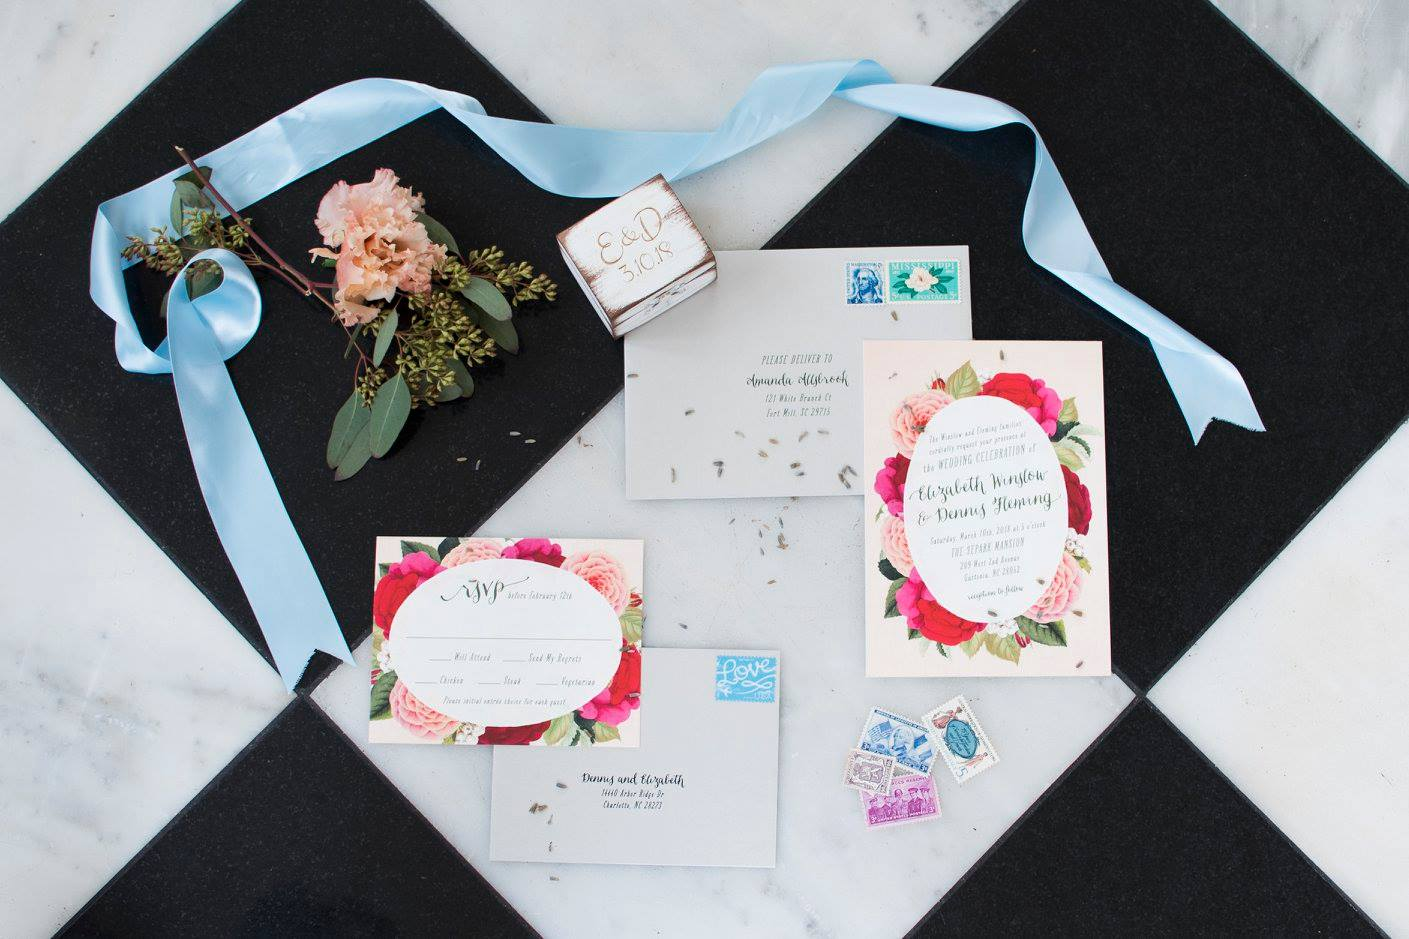 Detail shot of wedding invitation suite with amazing pink floral details captured by Soussou Productions